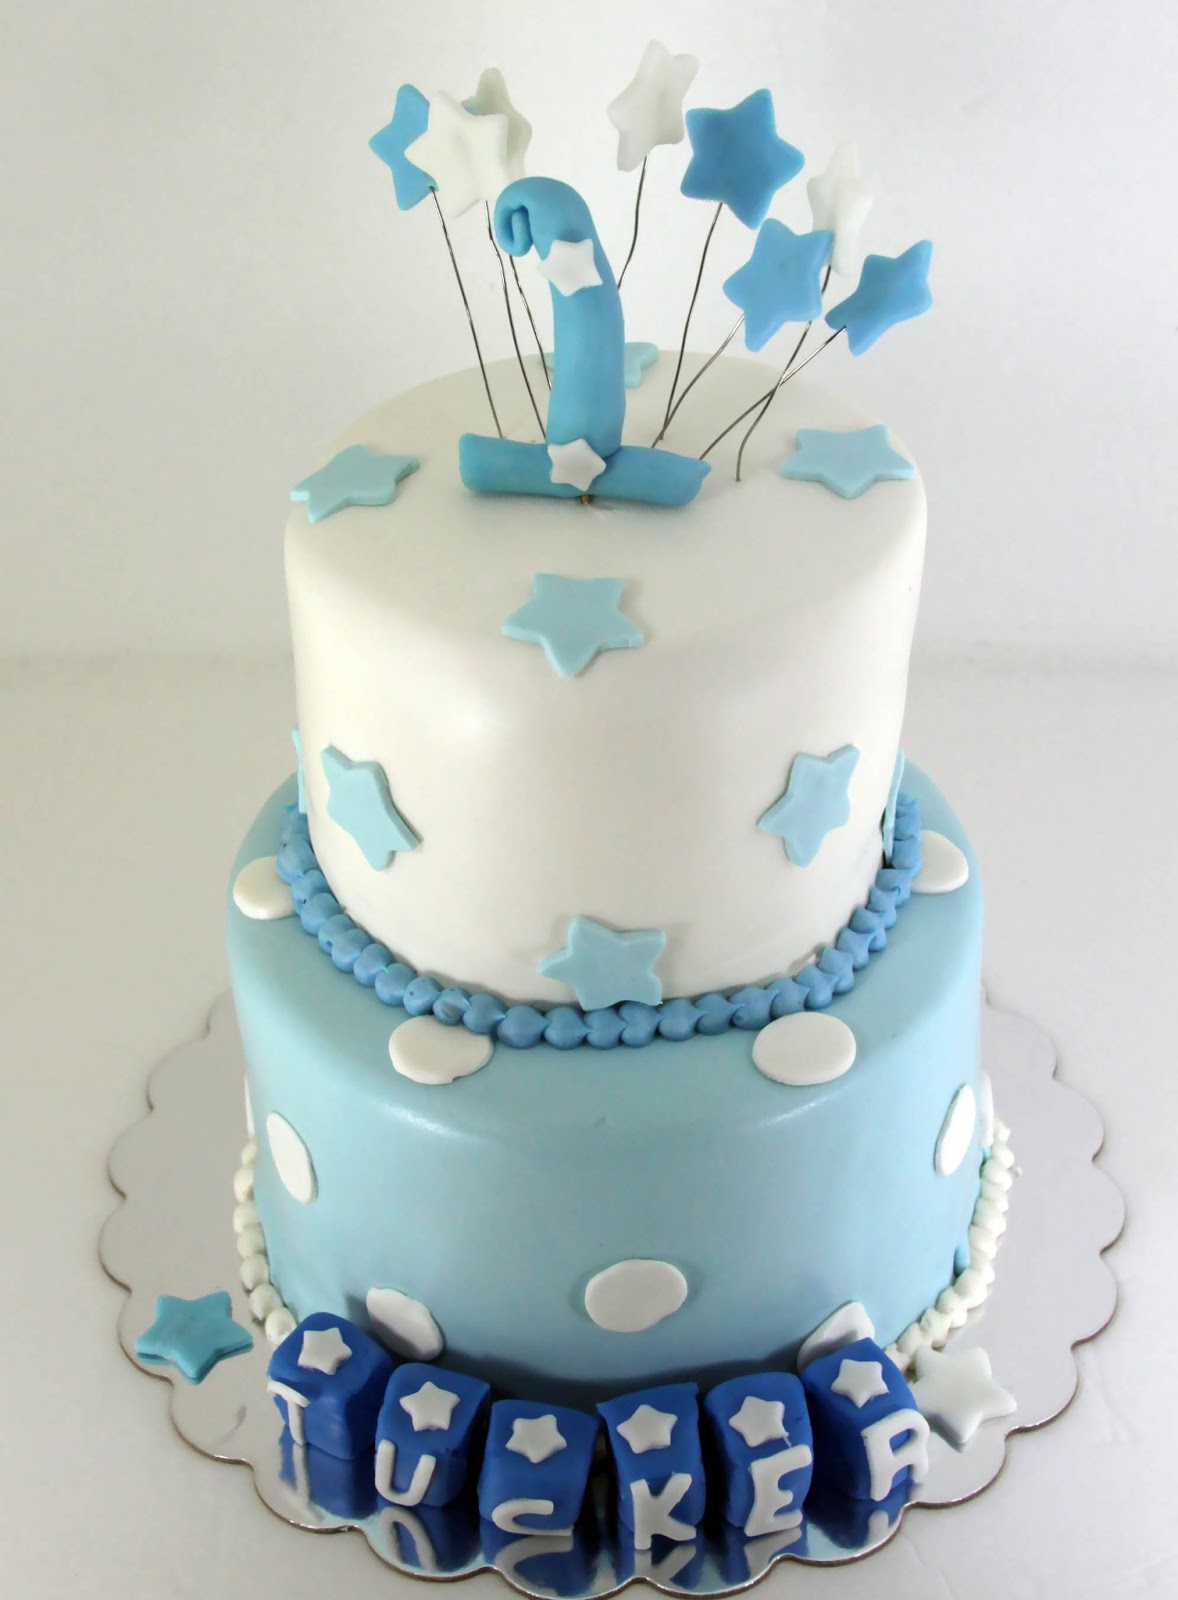 Bday Cake Designs For Baby Boy : Tastefully Done: Baby Boy Blue 1st Birthday Cake